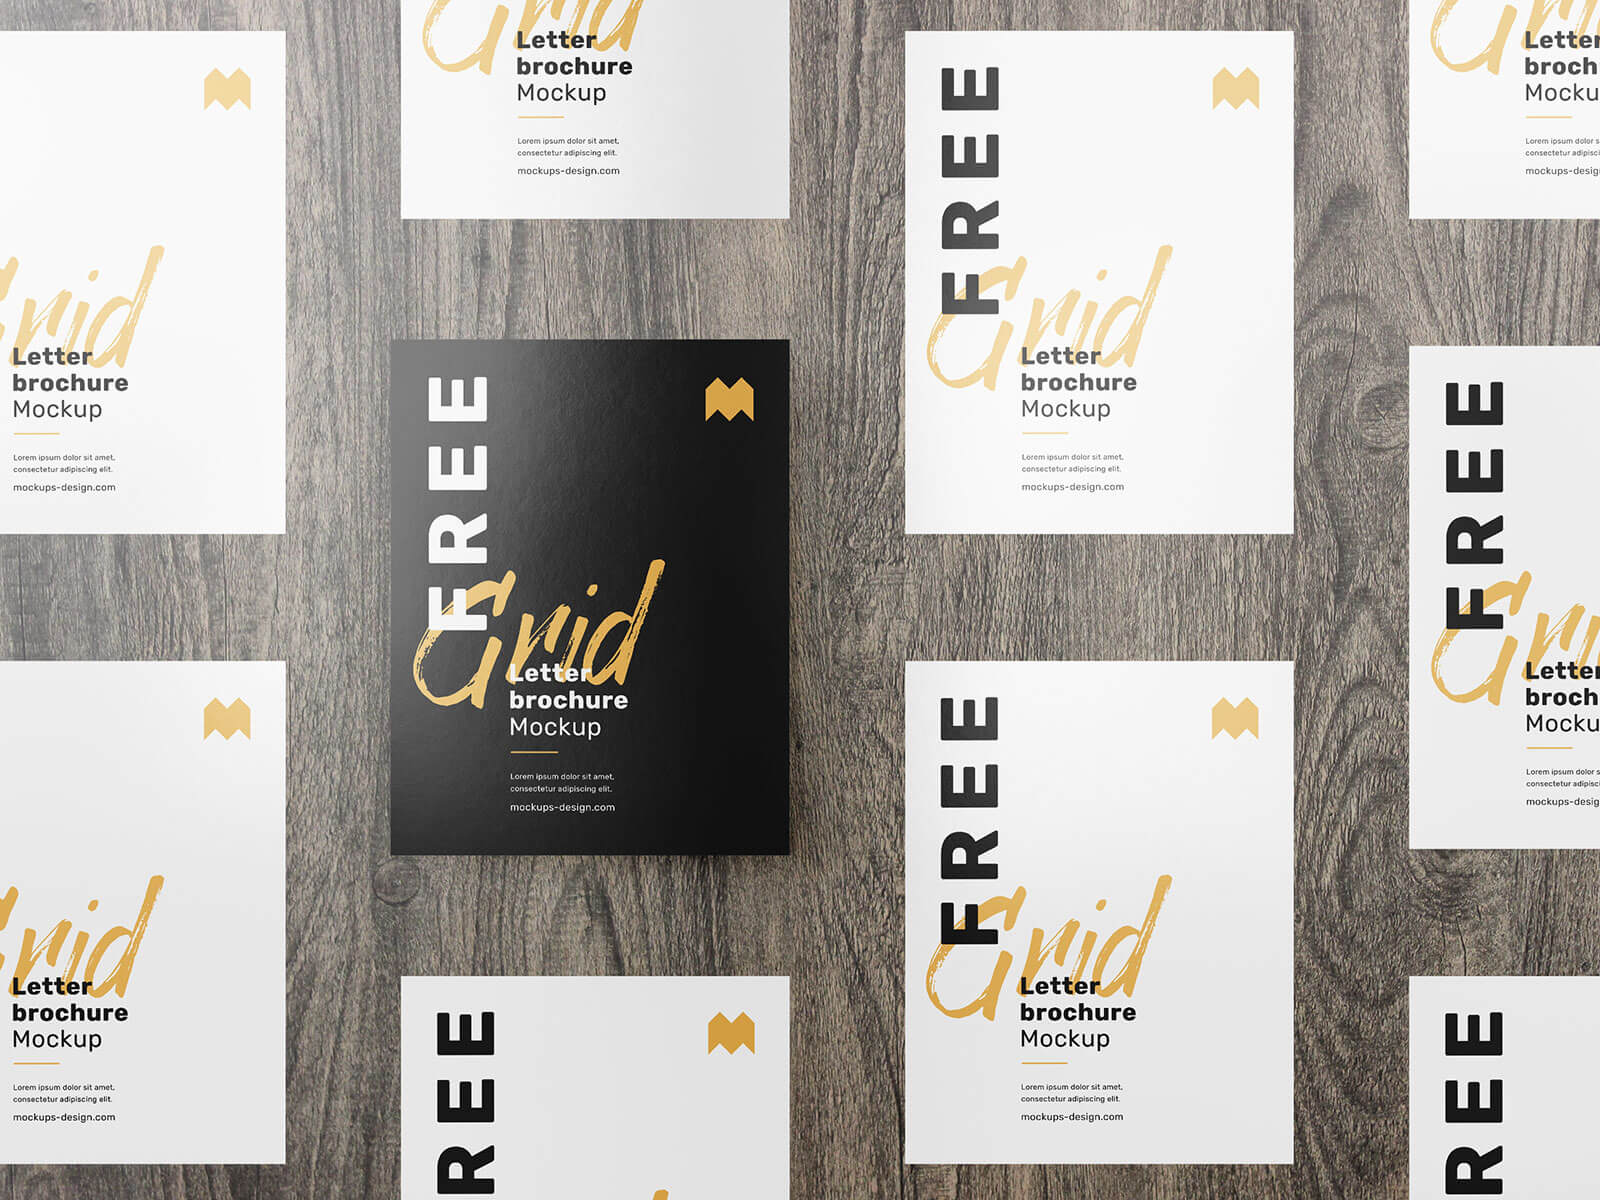 Free_Double Sided US_Letter_Brochure_Flyer Mockup_PSD Set (3)